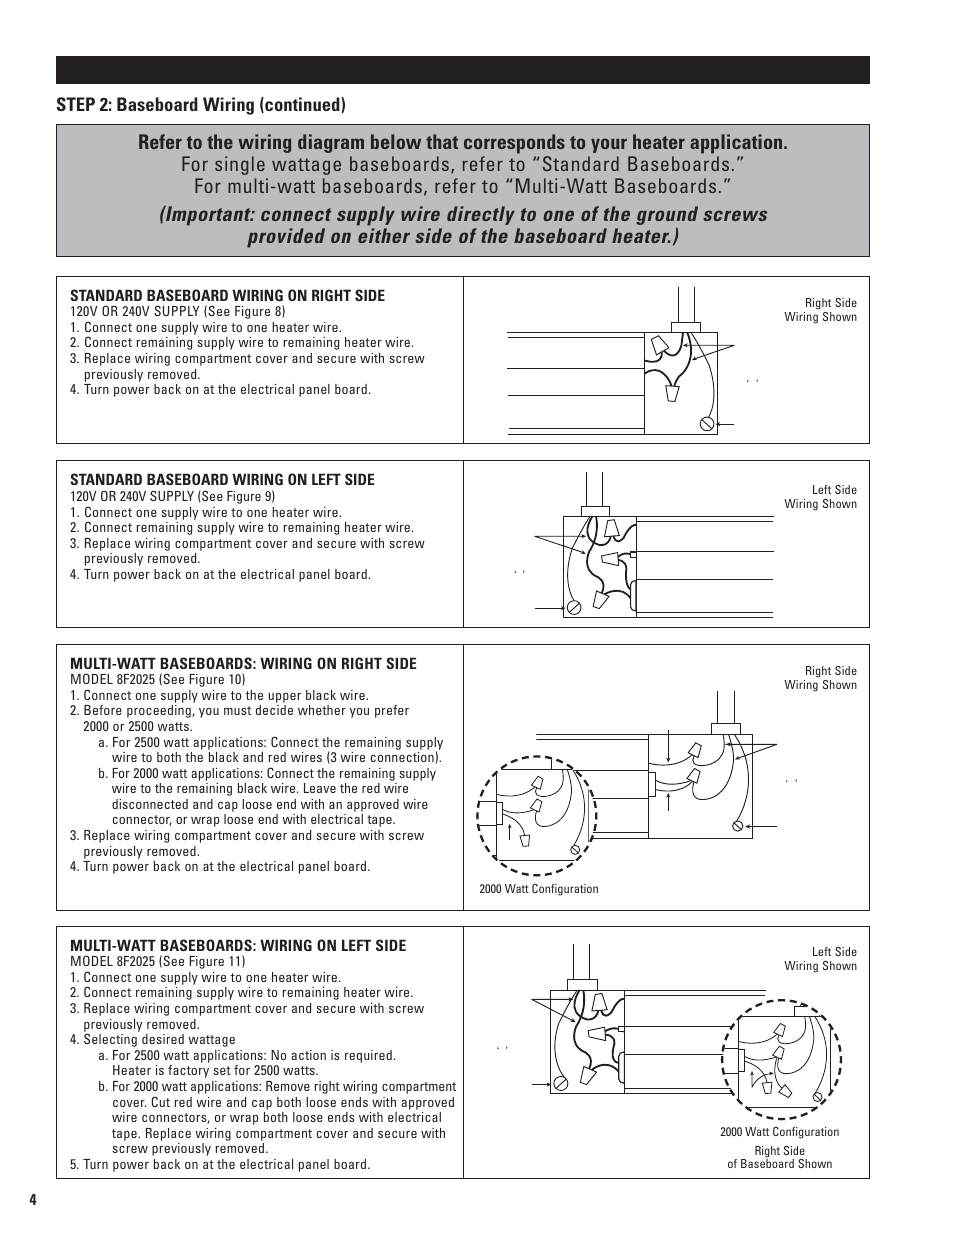 cadet 5f1250 8 page4?resize=665%2C861 w430 cadet heater wiring diagram conventional fire alarm wiring 220 3 Wire Wiring Diagram at soozxer.org